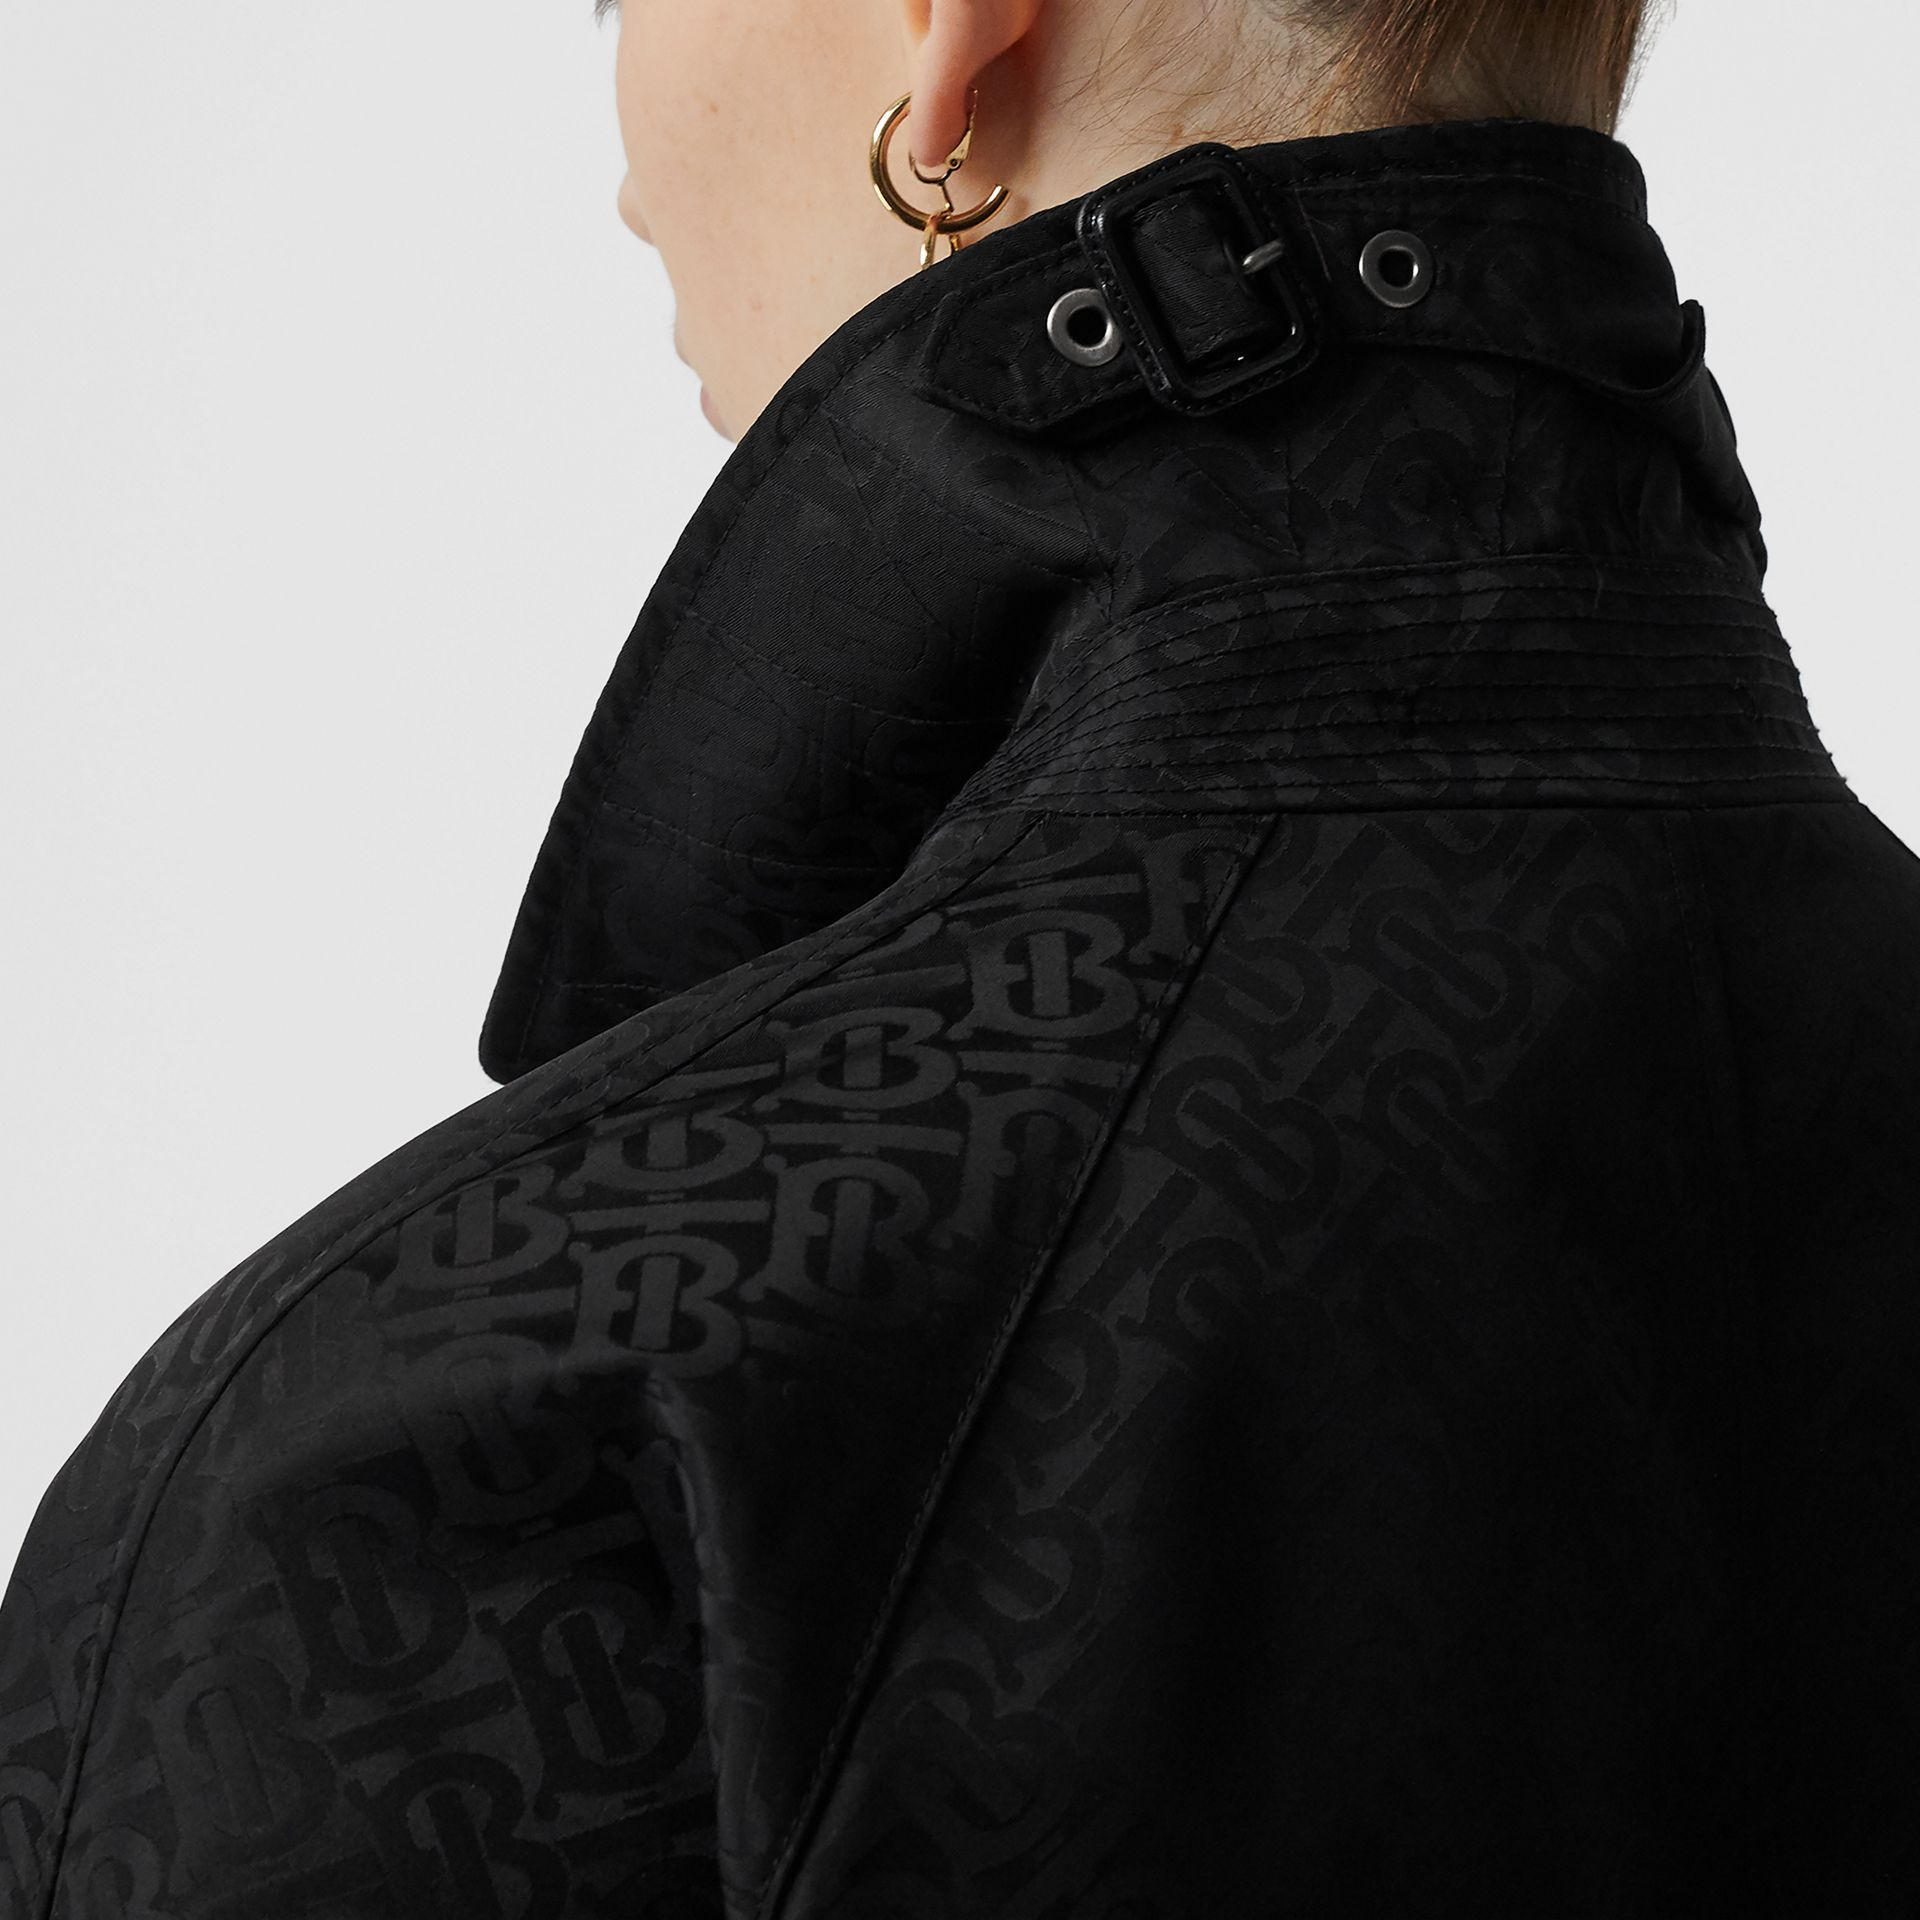 Monogram ECONYL® Jacquard Car Coat in Black - Women | Burberry Australia - gallery image 5